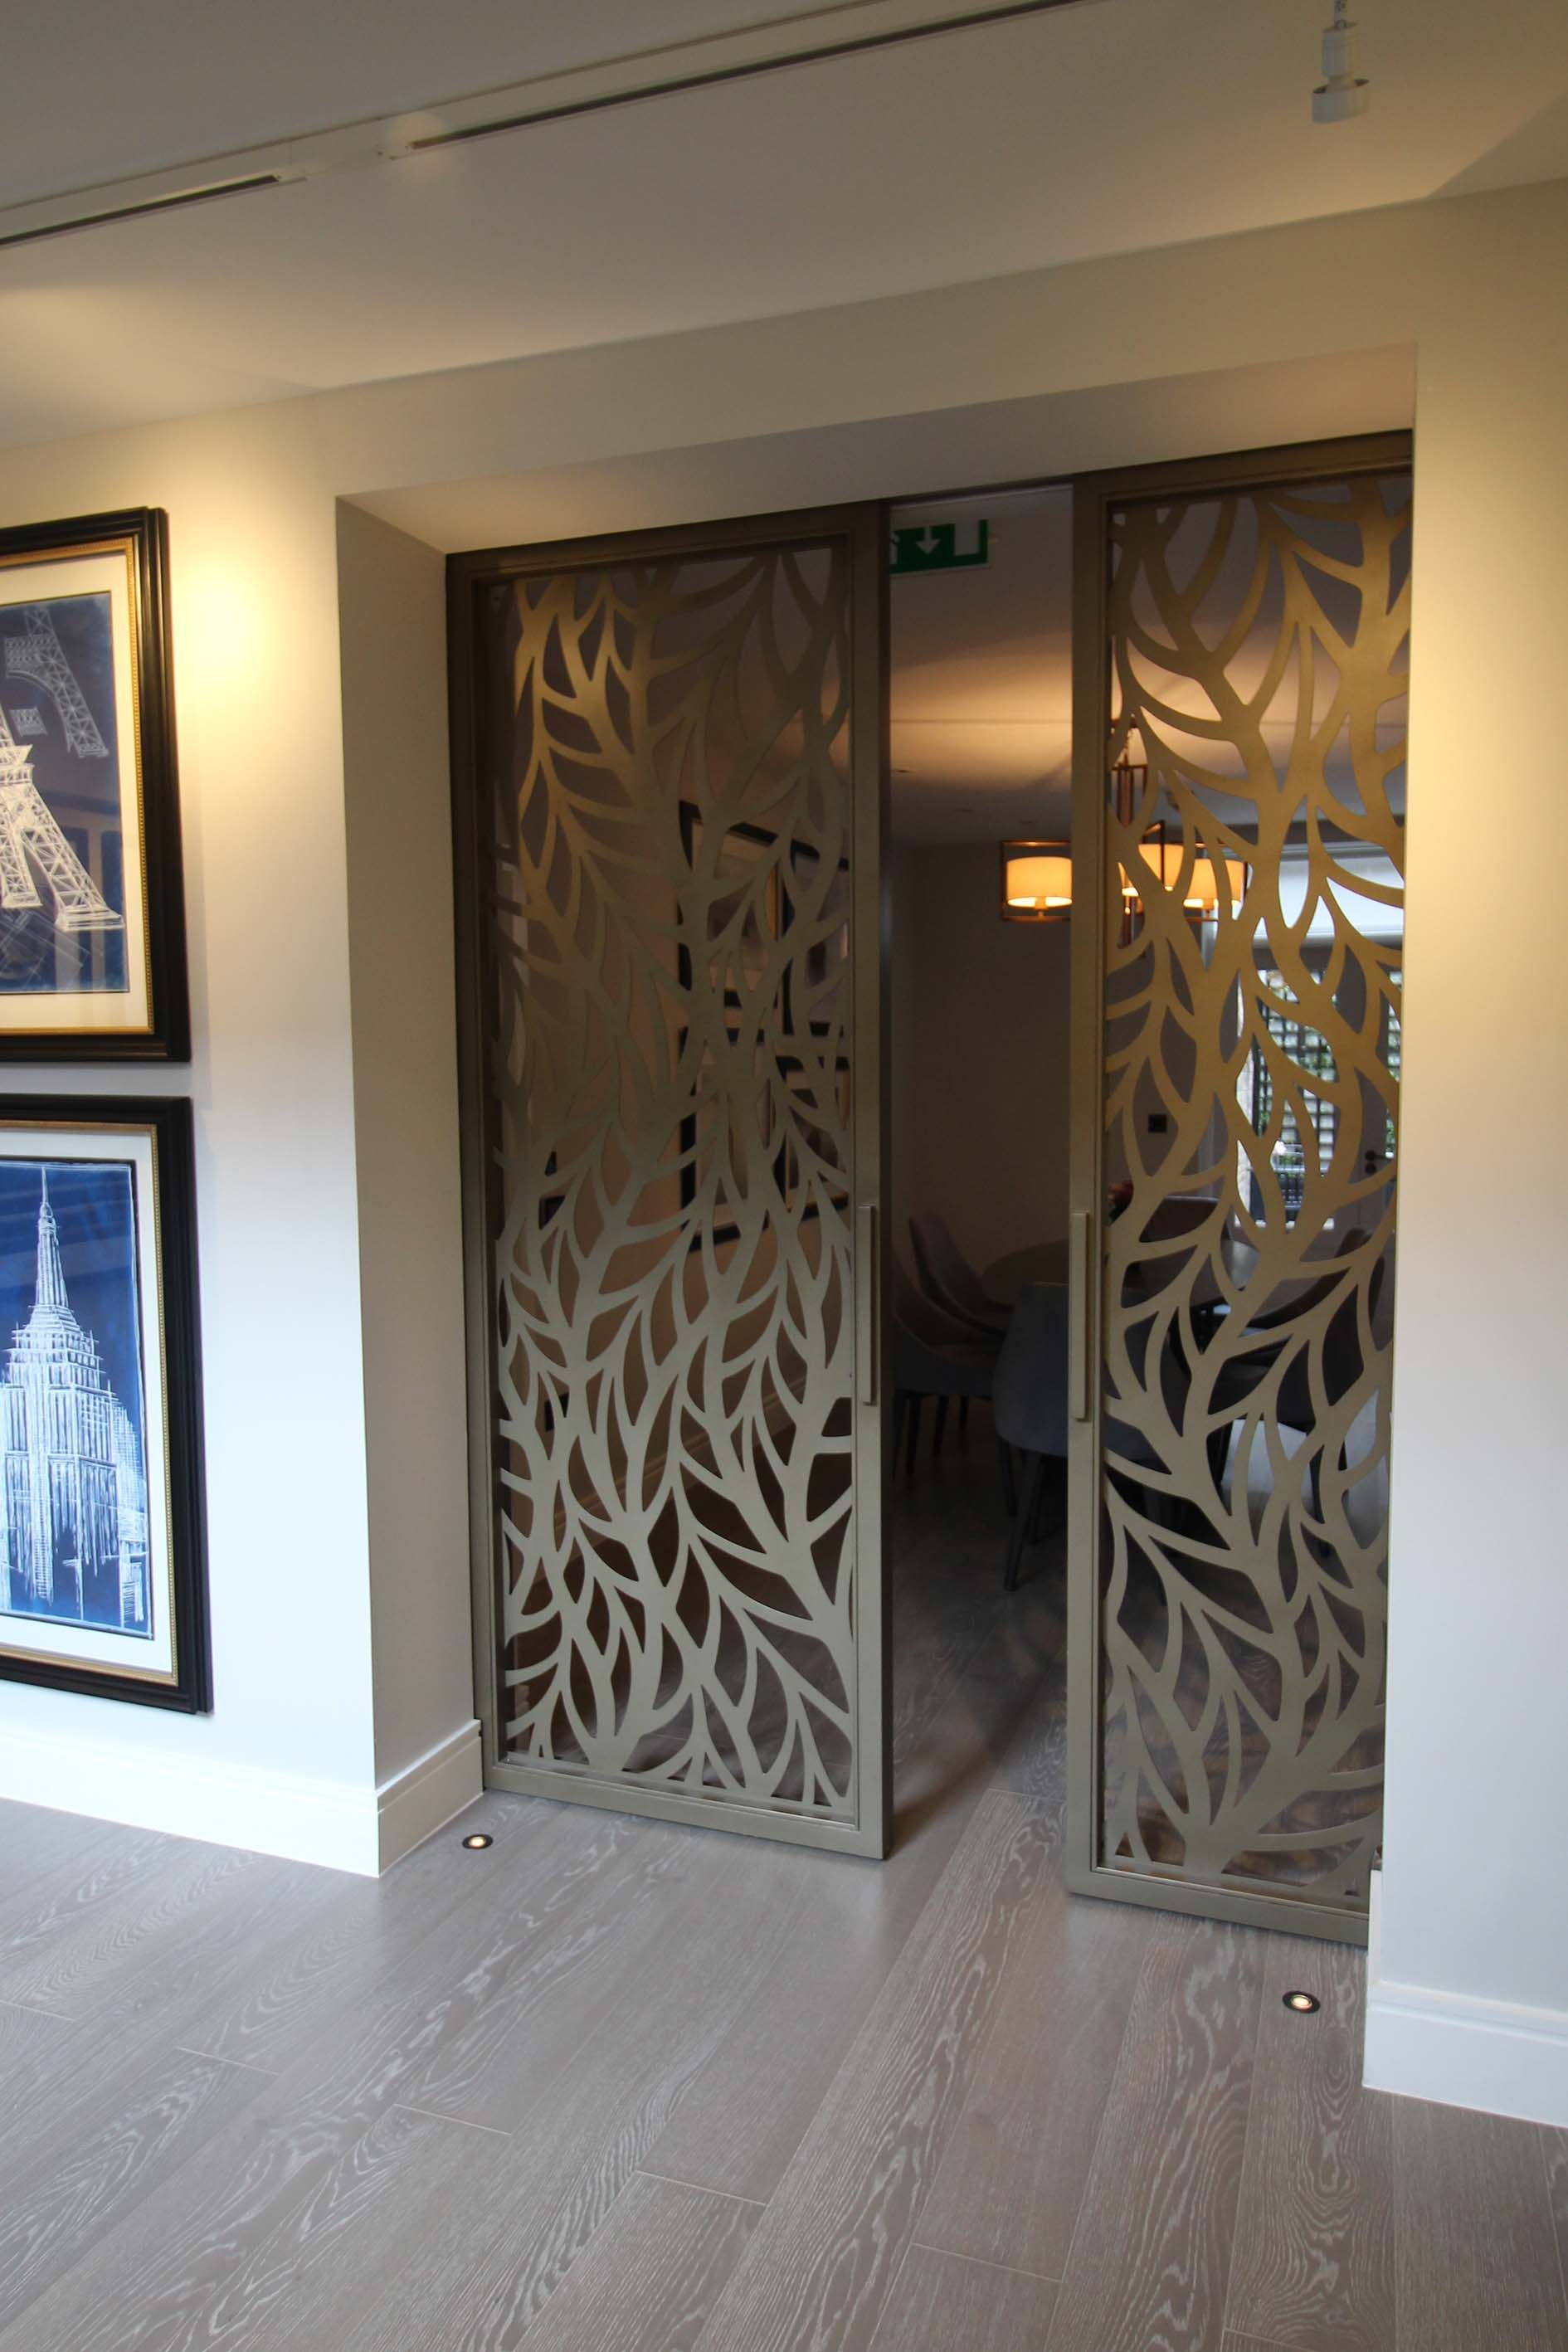 Silian Art Gallery, London. Laser Cut Sliding Doors. Frond